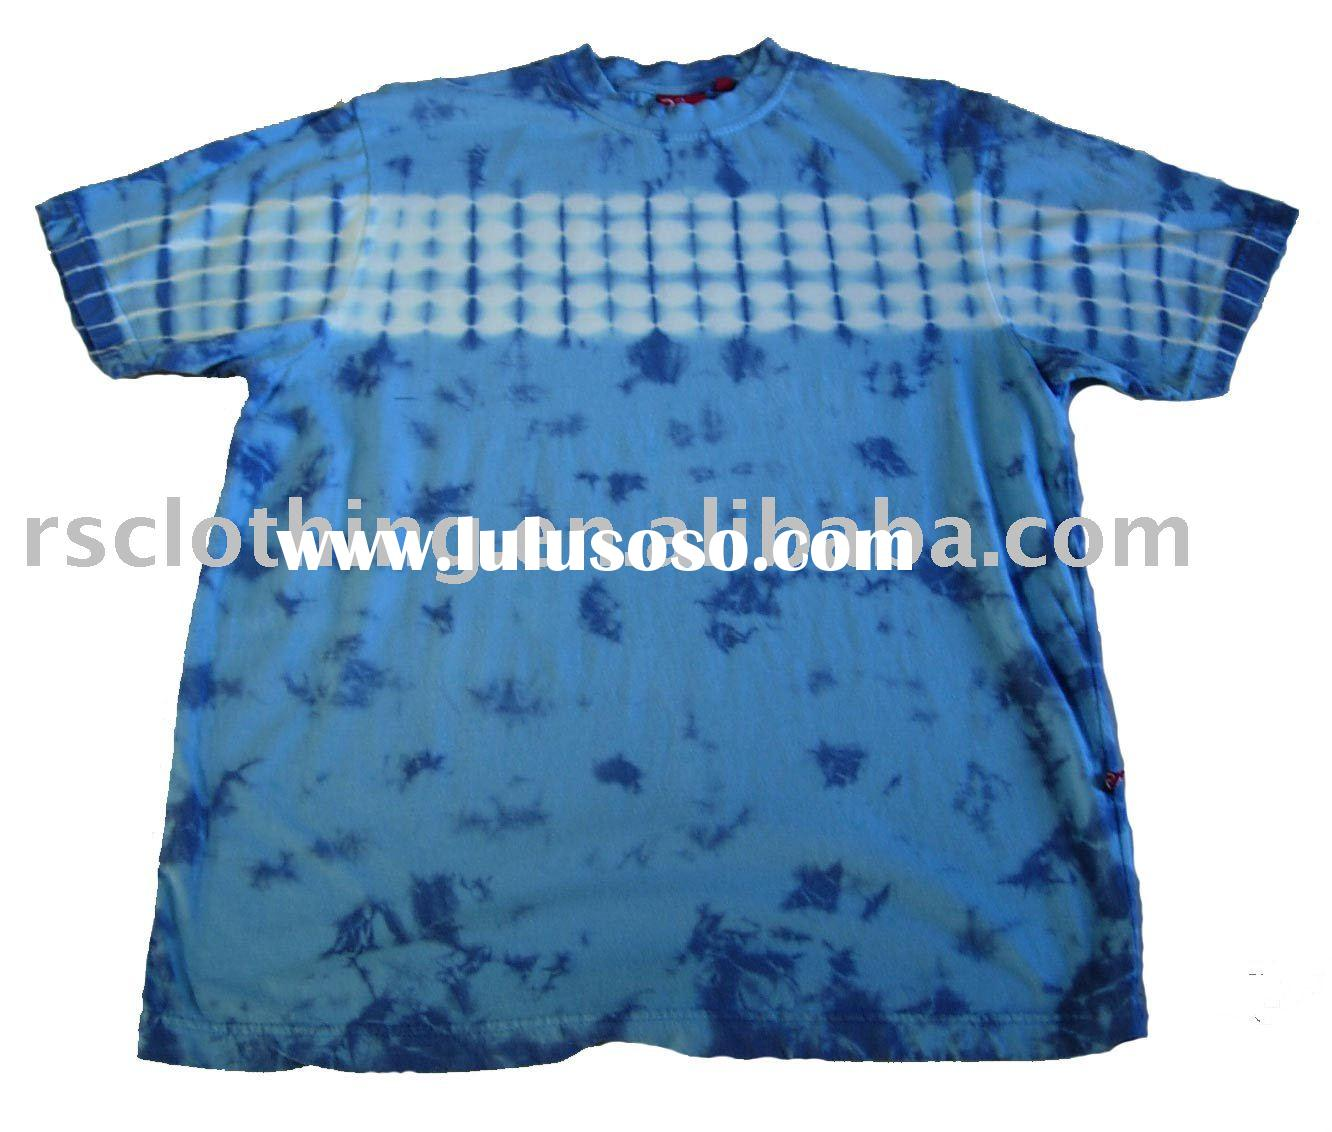 Men's cotton tie dye t-shirt